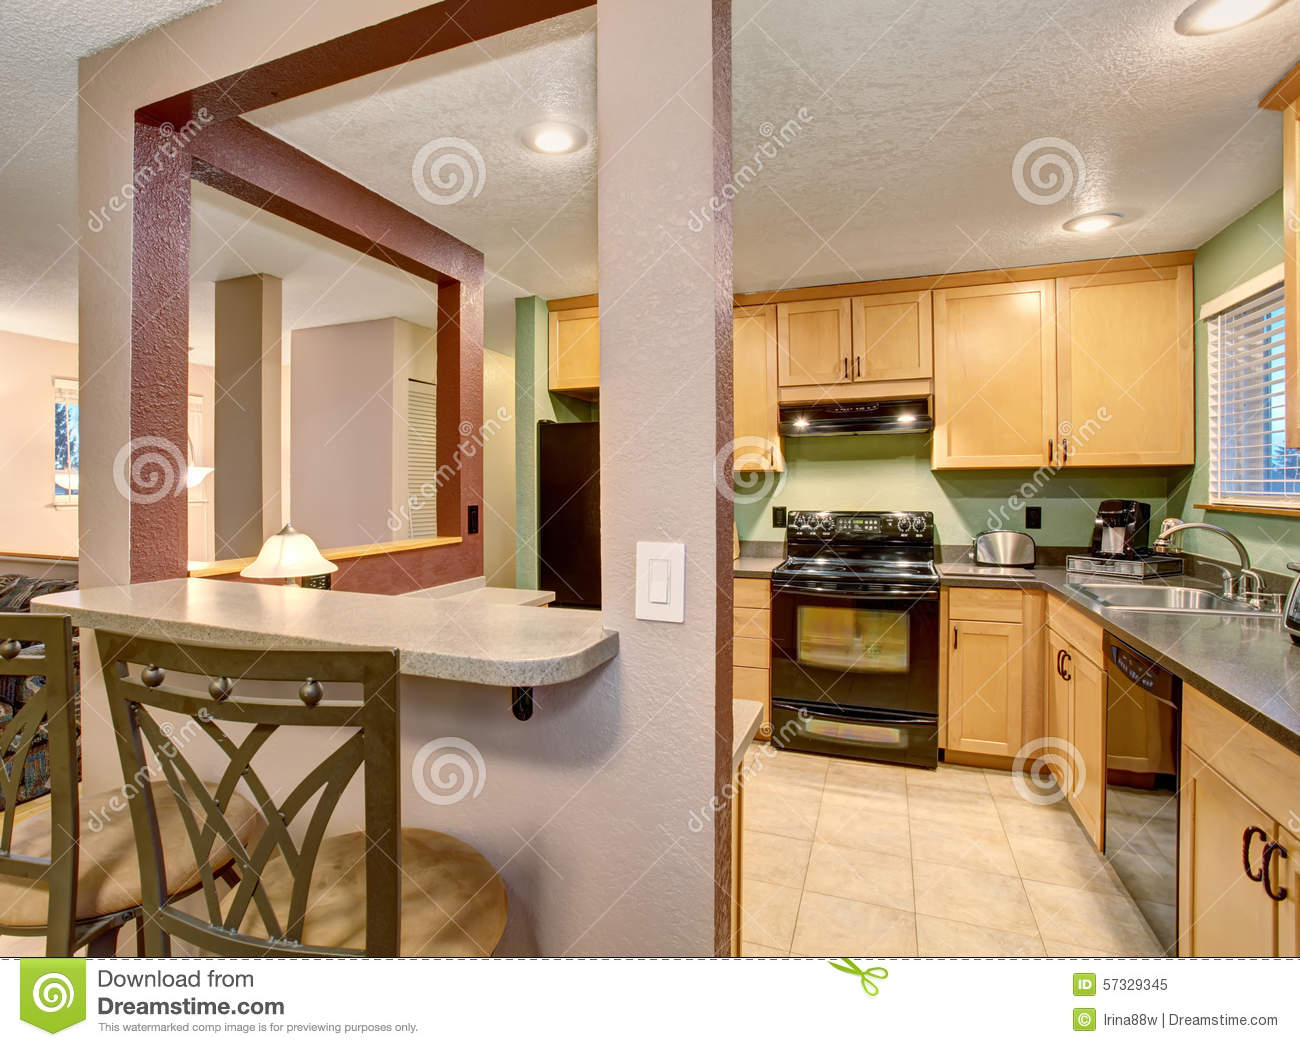 american light wood kitchen interior. stock photo - image: 57329345